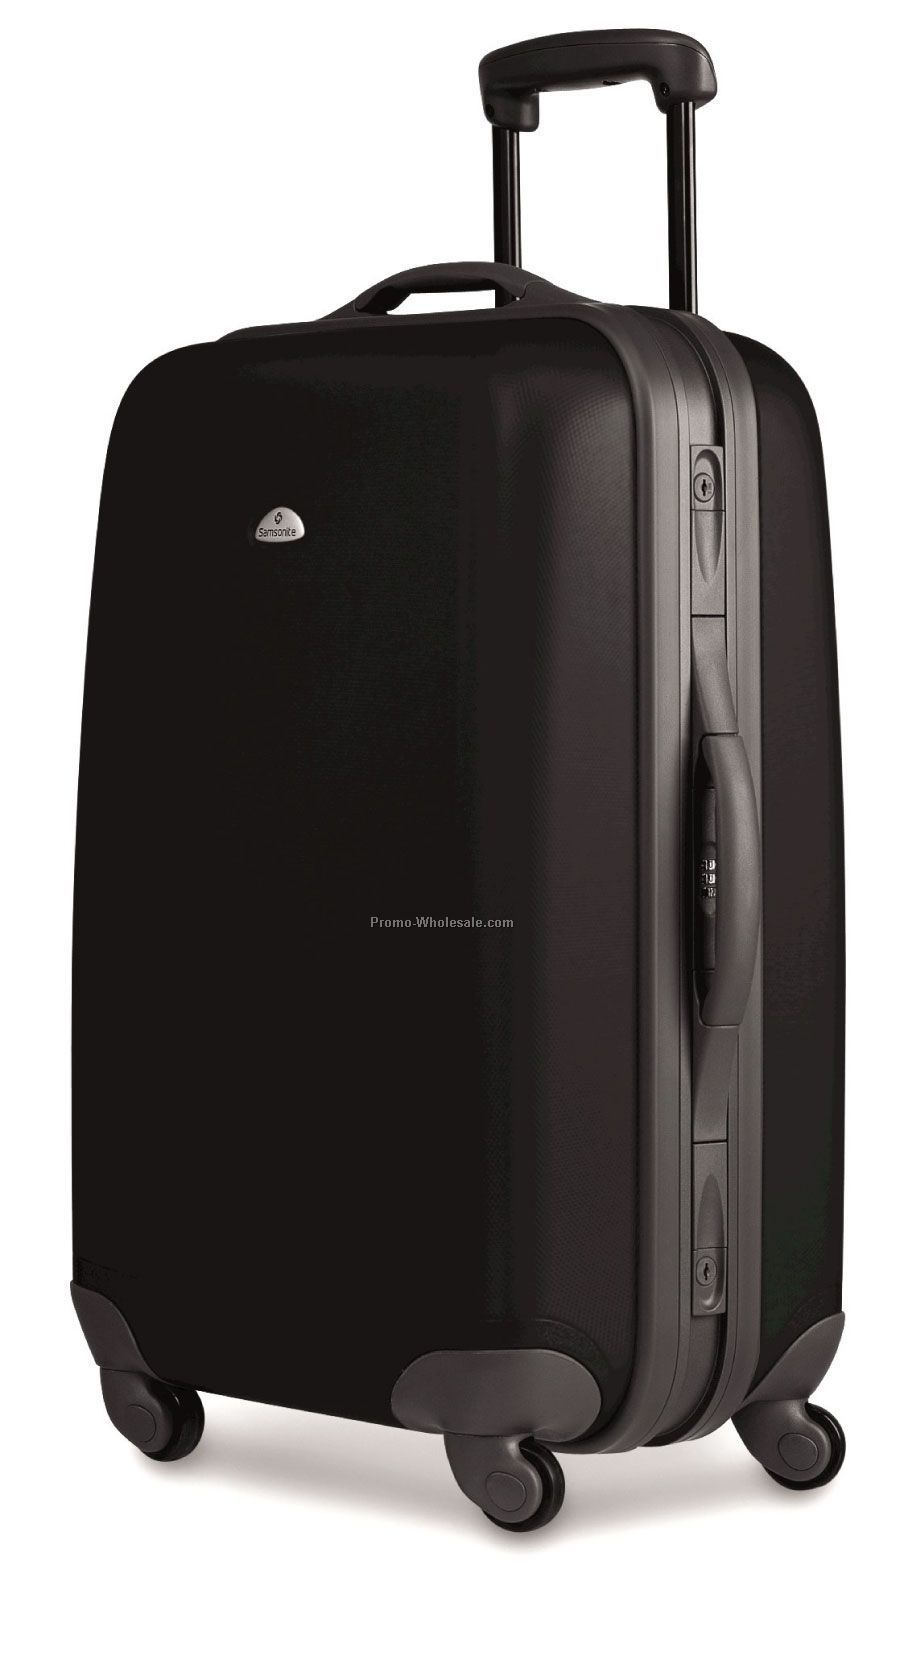 24 Spinner Upright Cruiseair Suitcase